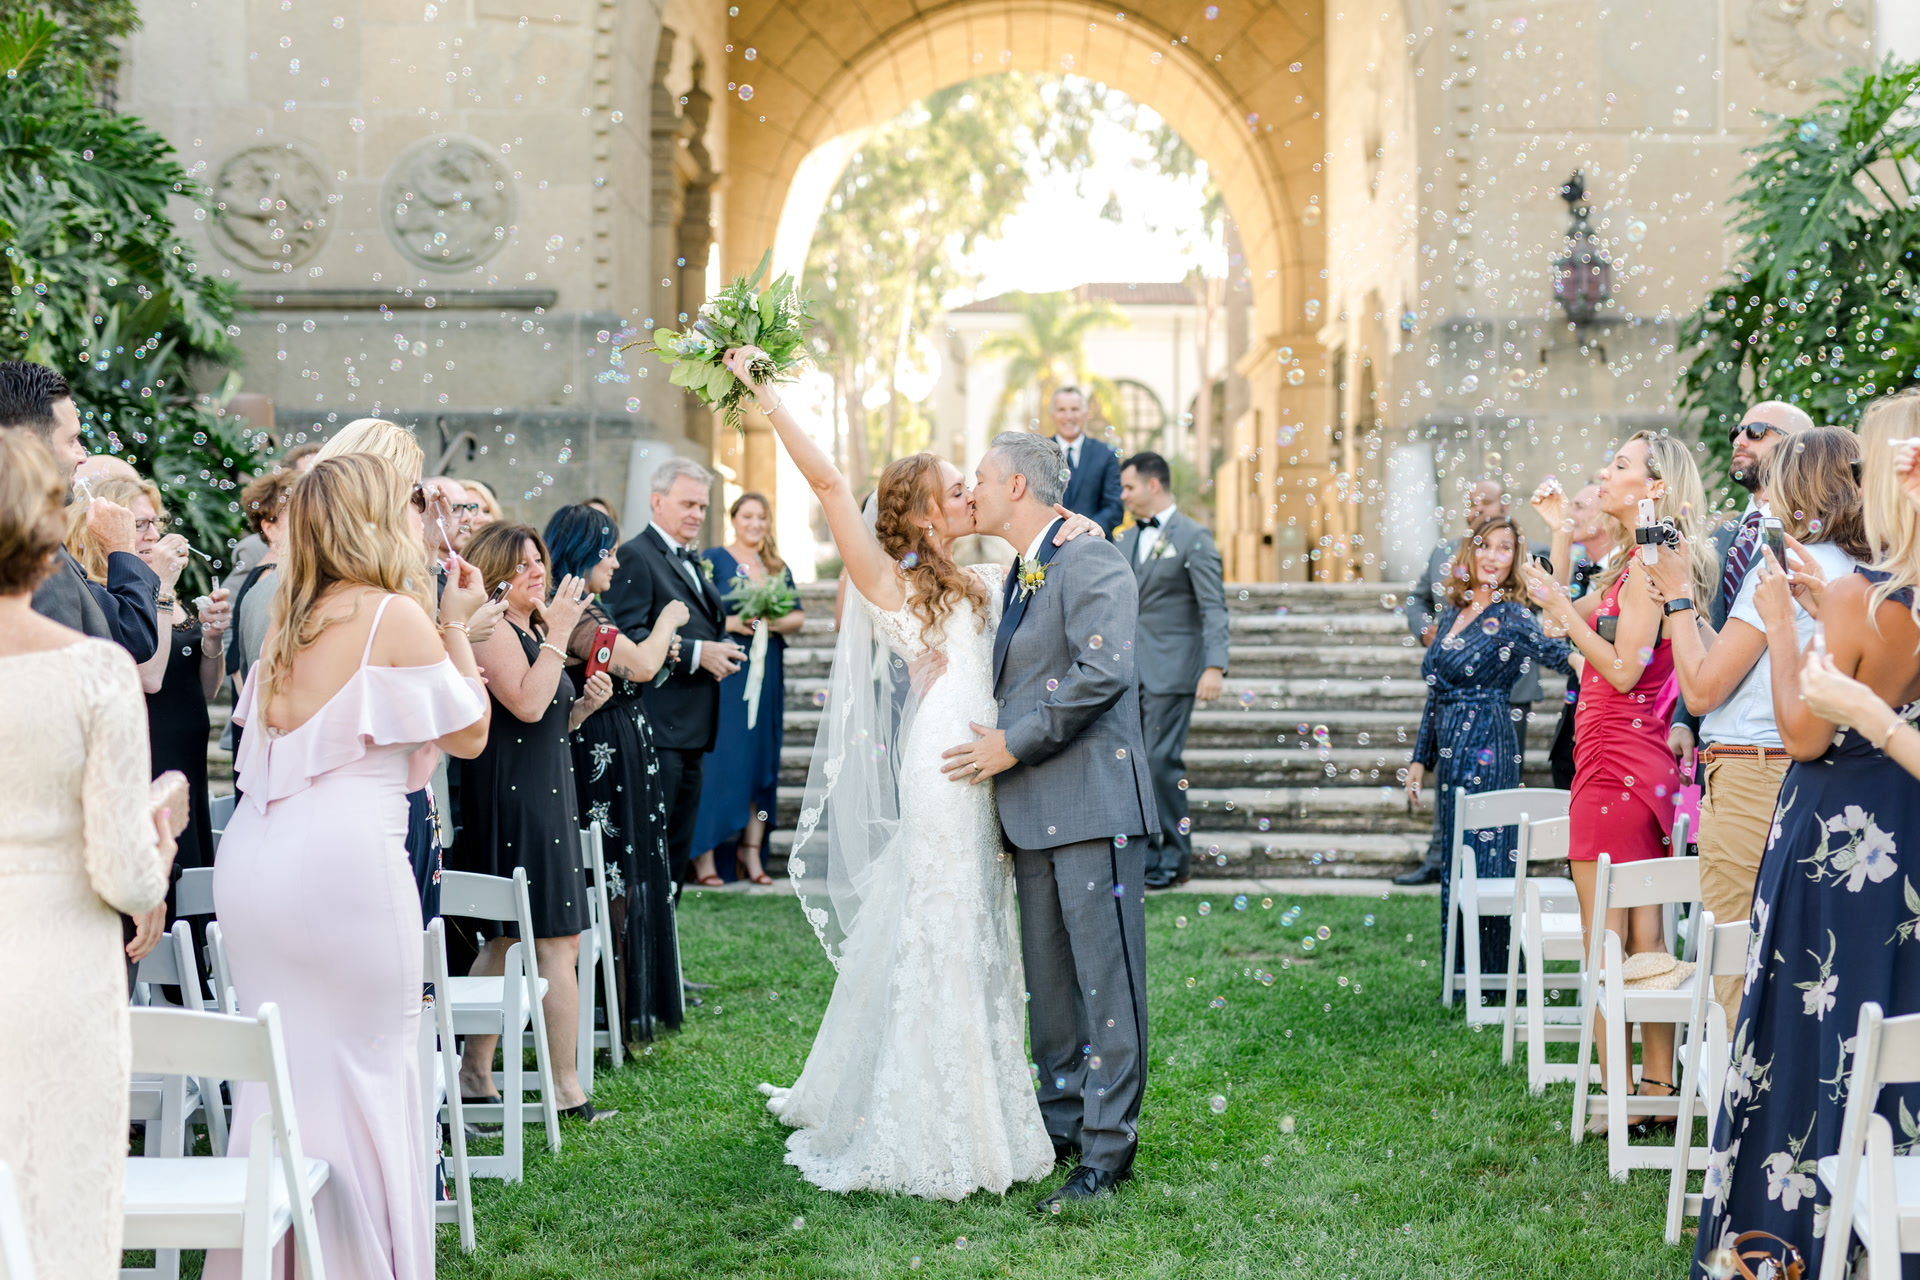 Chrissy Kuligowski + Johnny Gedstad | Santa Barbara, California | Santa Barbara Courthouse